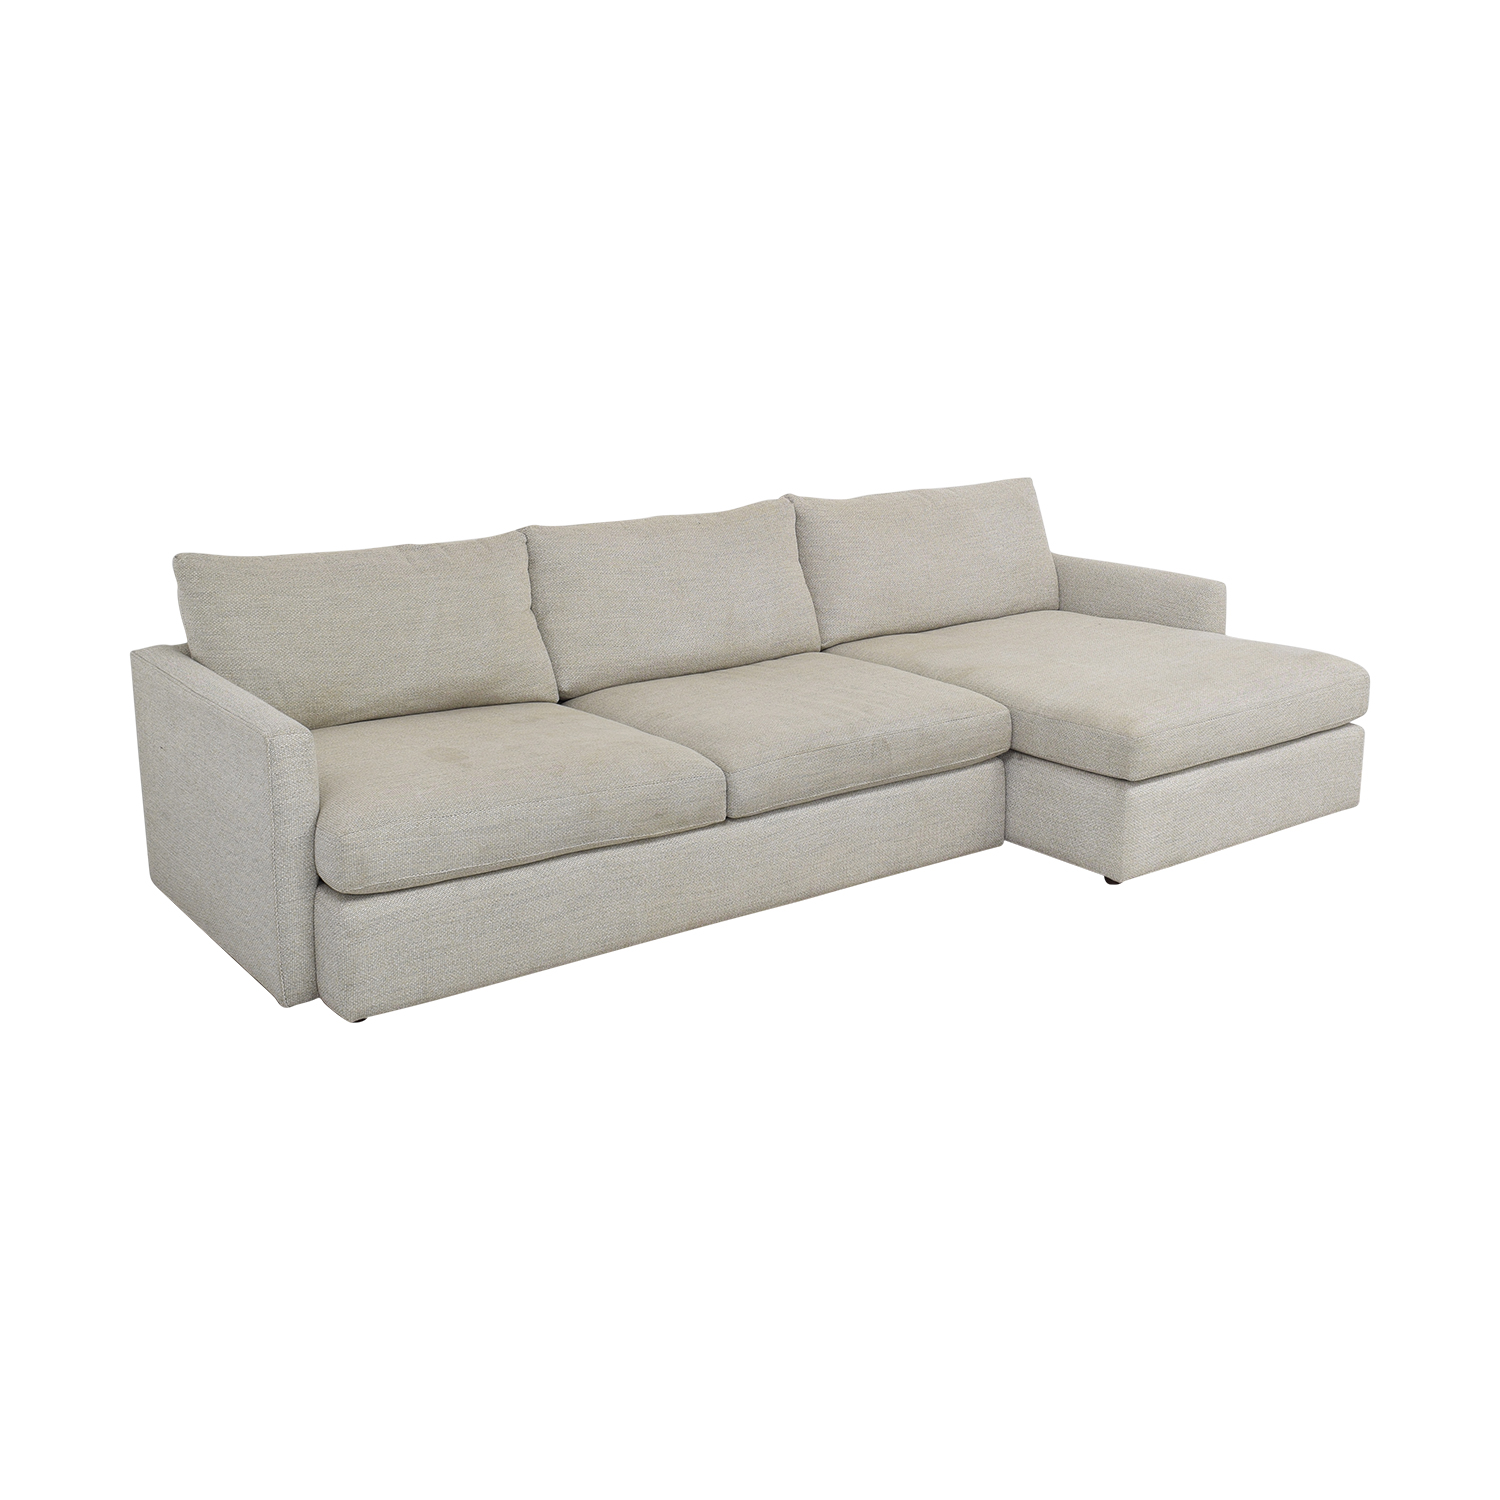 buy Crate & Barrel Lounge II 2-Piece Sectional Sofa Crate & Barrel Sectionals